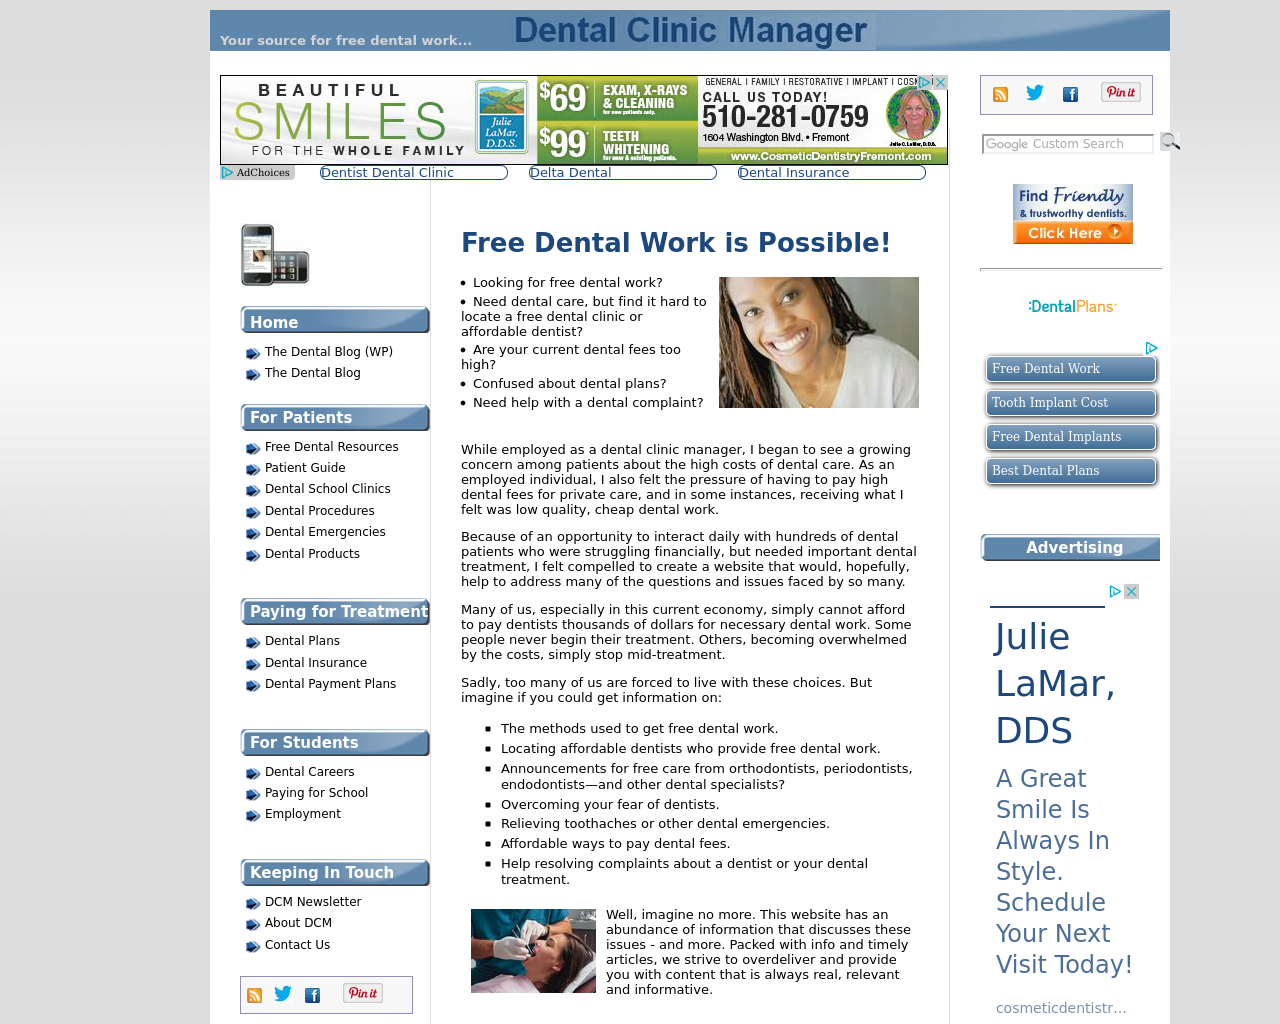 Dental-Clinic-Manager-Advertising-Reviews-Pricing